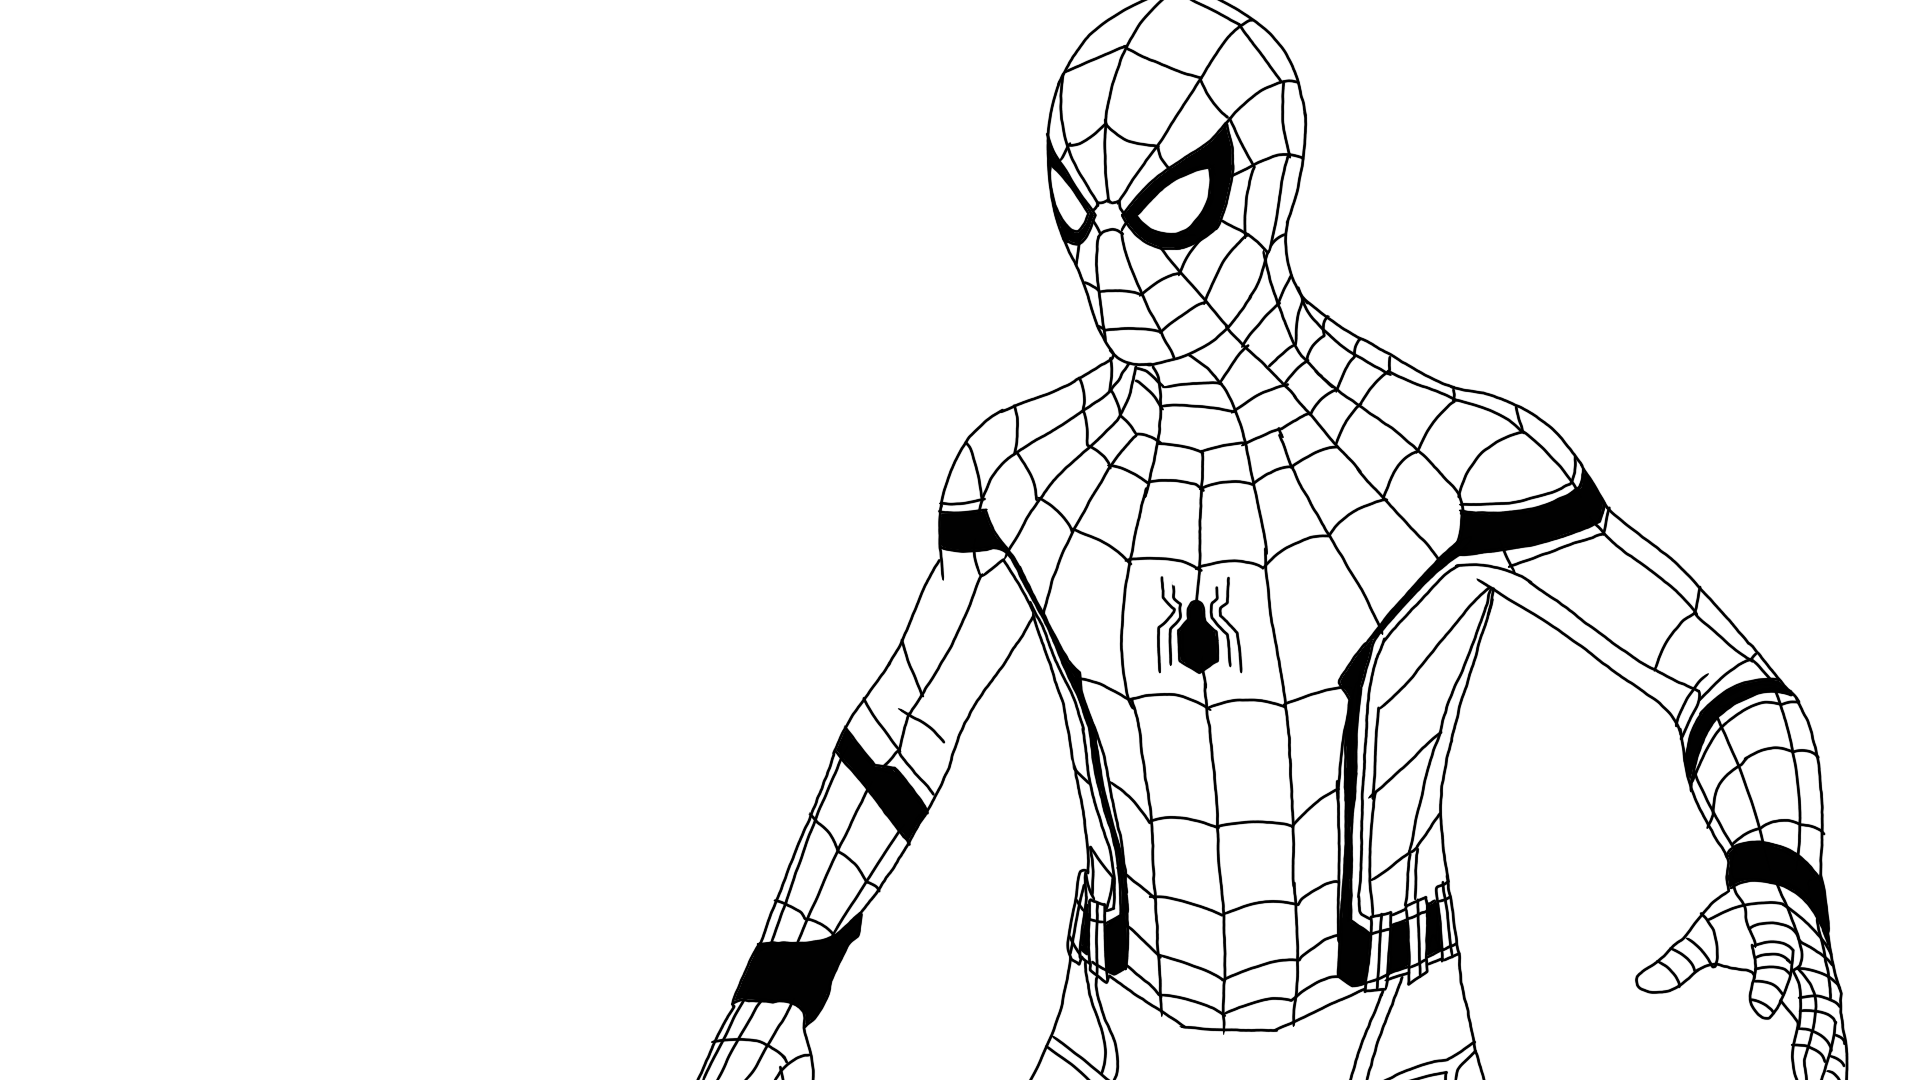 coloring kids spider man far from home coloring pages spider man far from home coloring pages scenery mountains coloring coloring man far home spider from pages kids